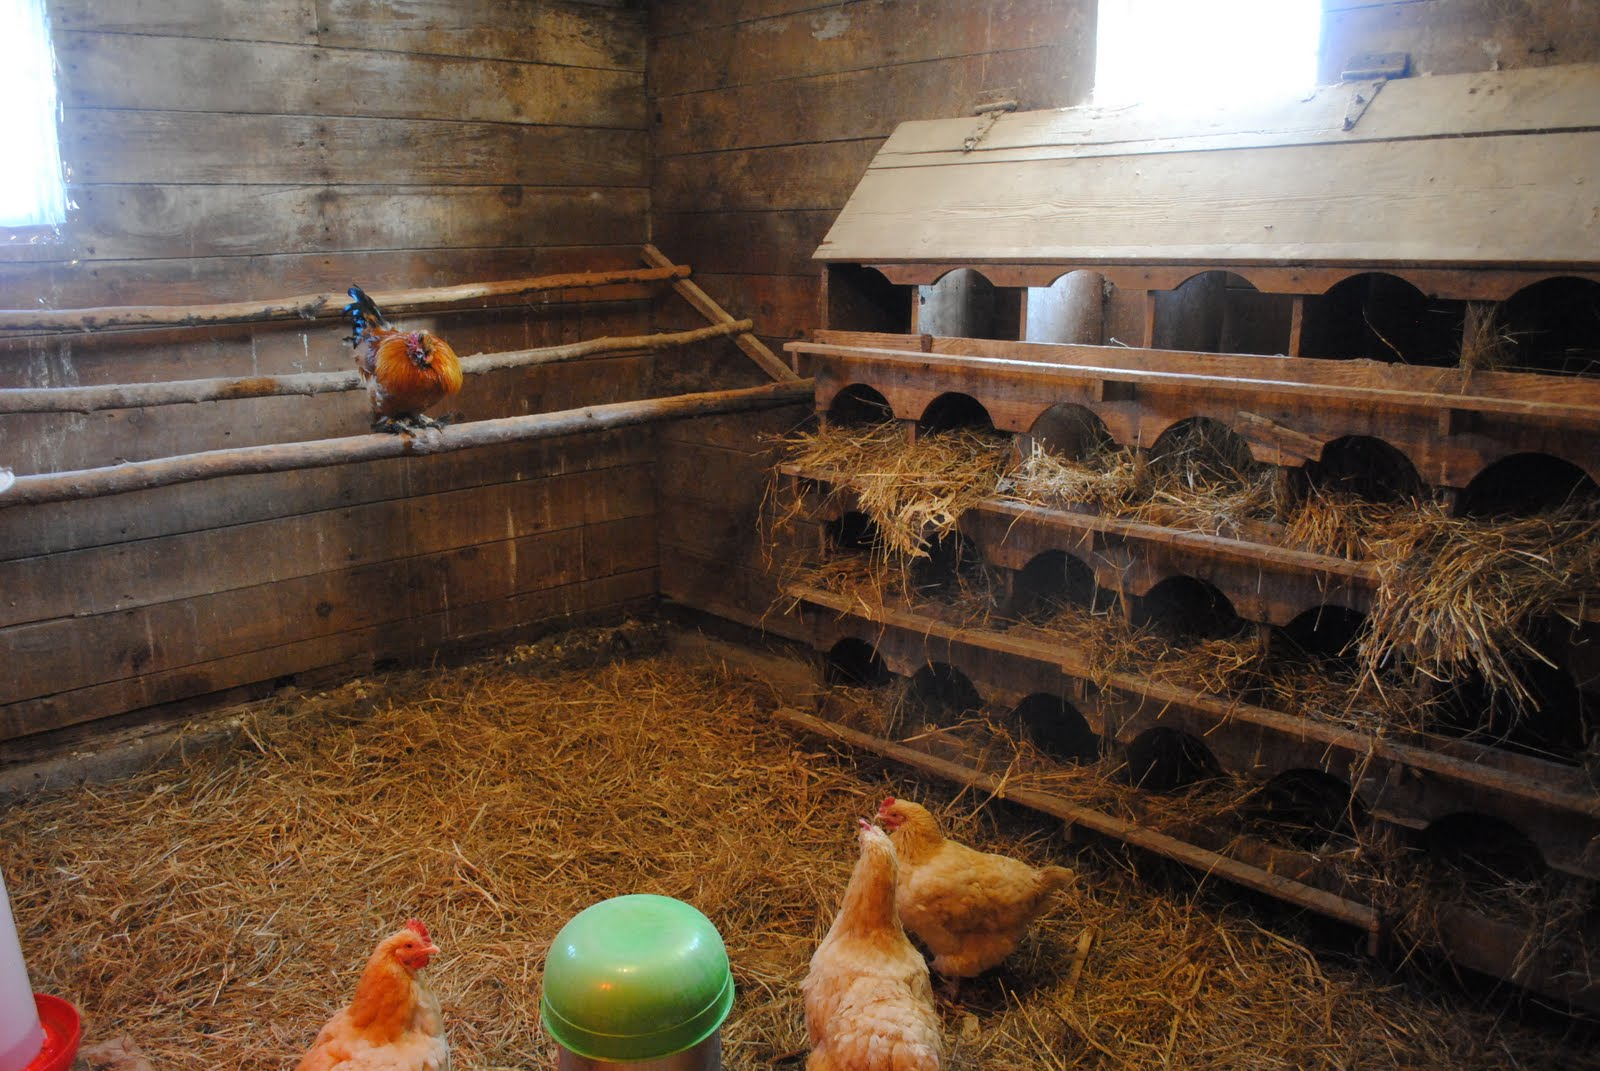 Chicken Coop Plans For 50 Chickens All About Chicken Coop 2017 Ideas. How To Build A Chicken Coop For 20 Chickens Build Your Own